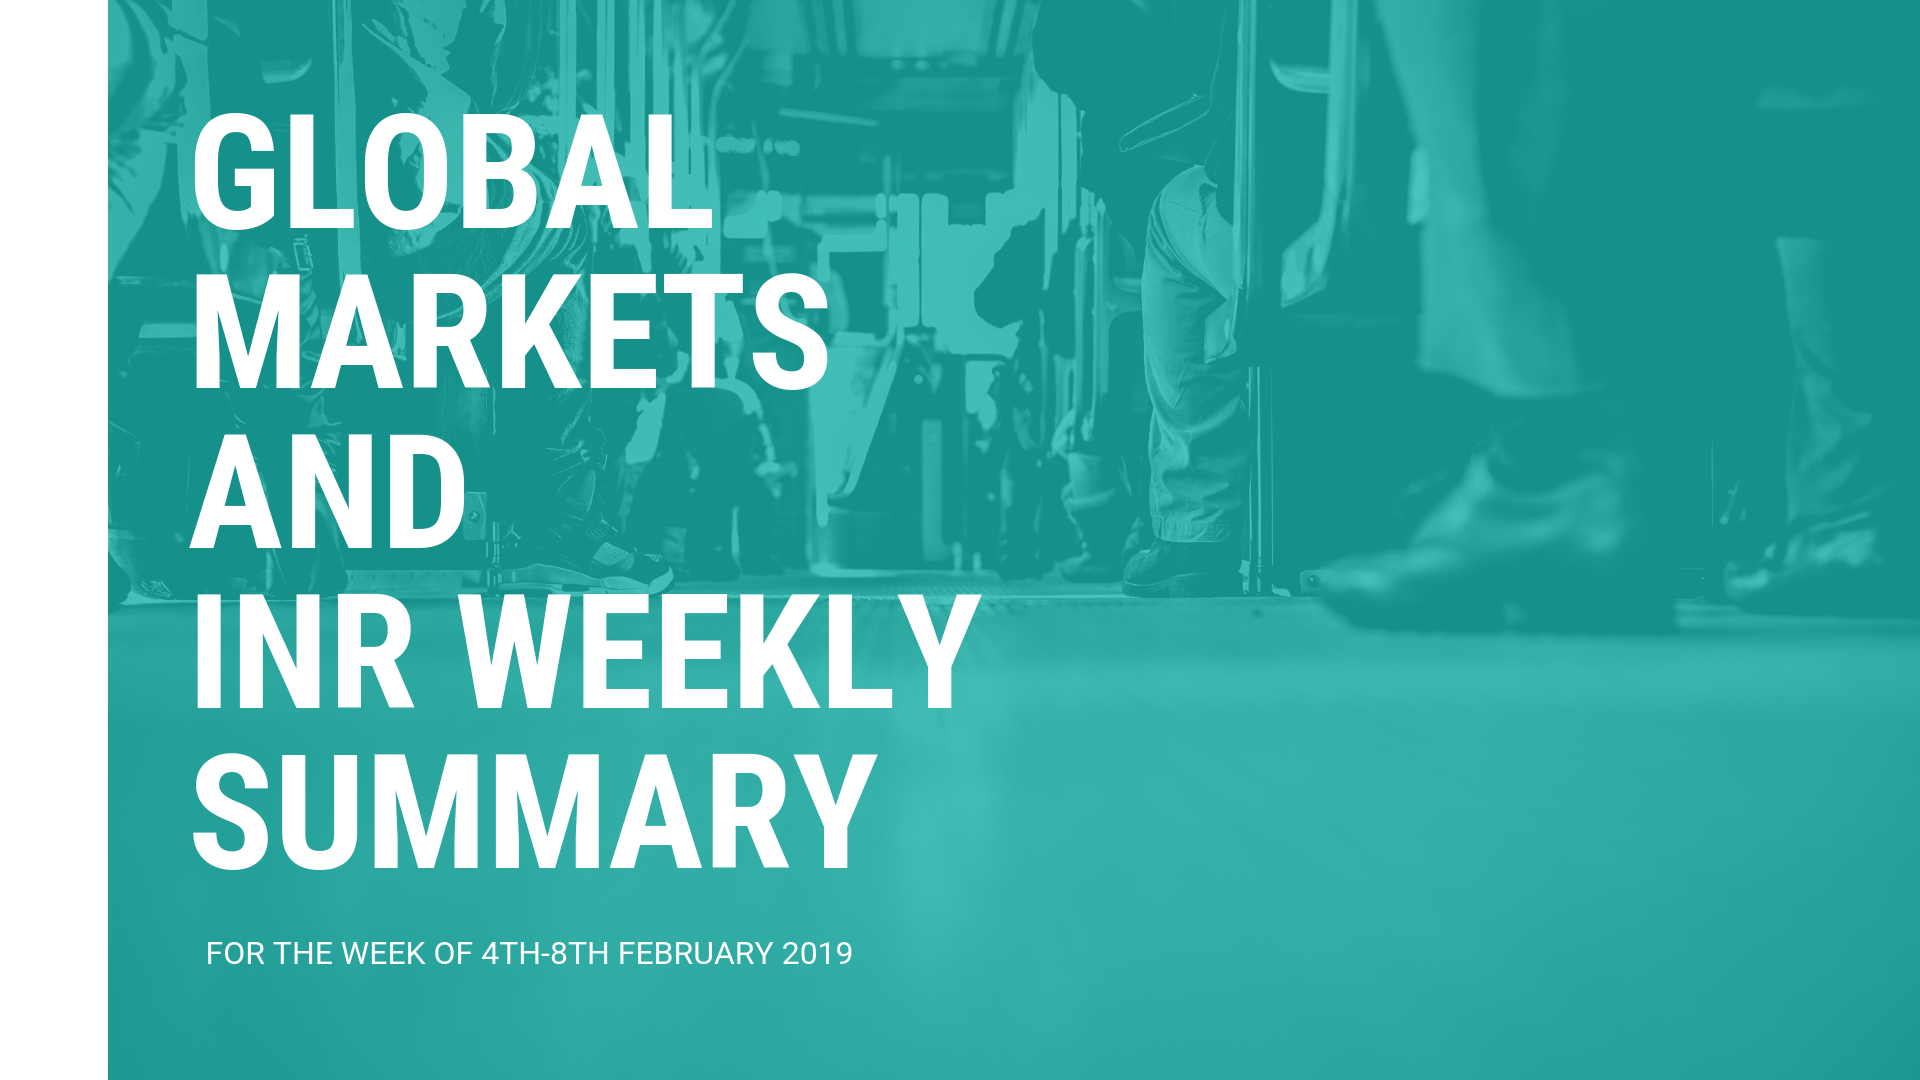 GLOBAL MARKETS AND INR WEEKLY SUMMARY (4th-8th February 2019)